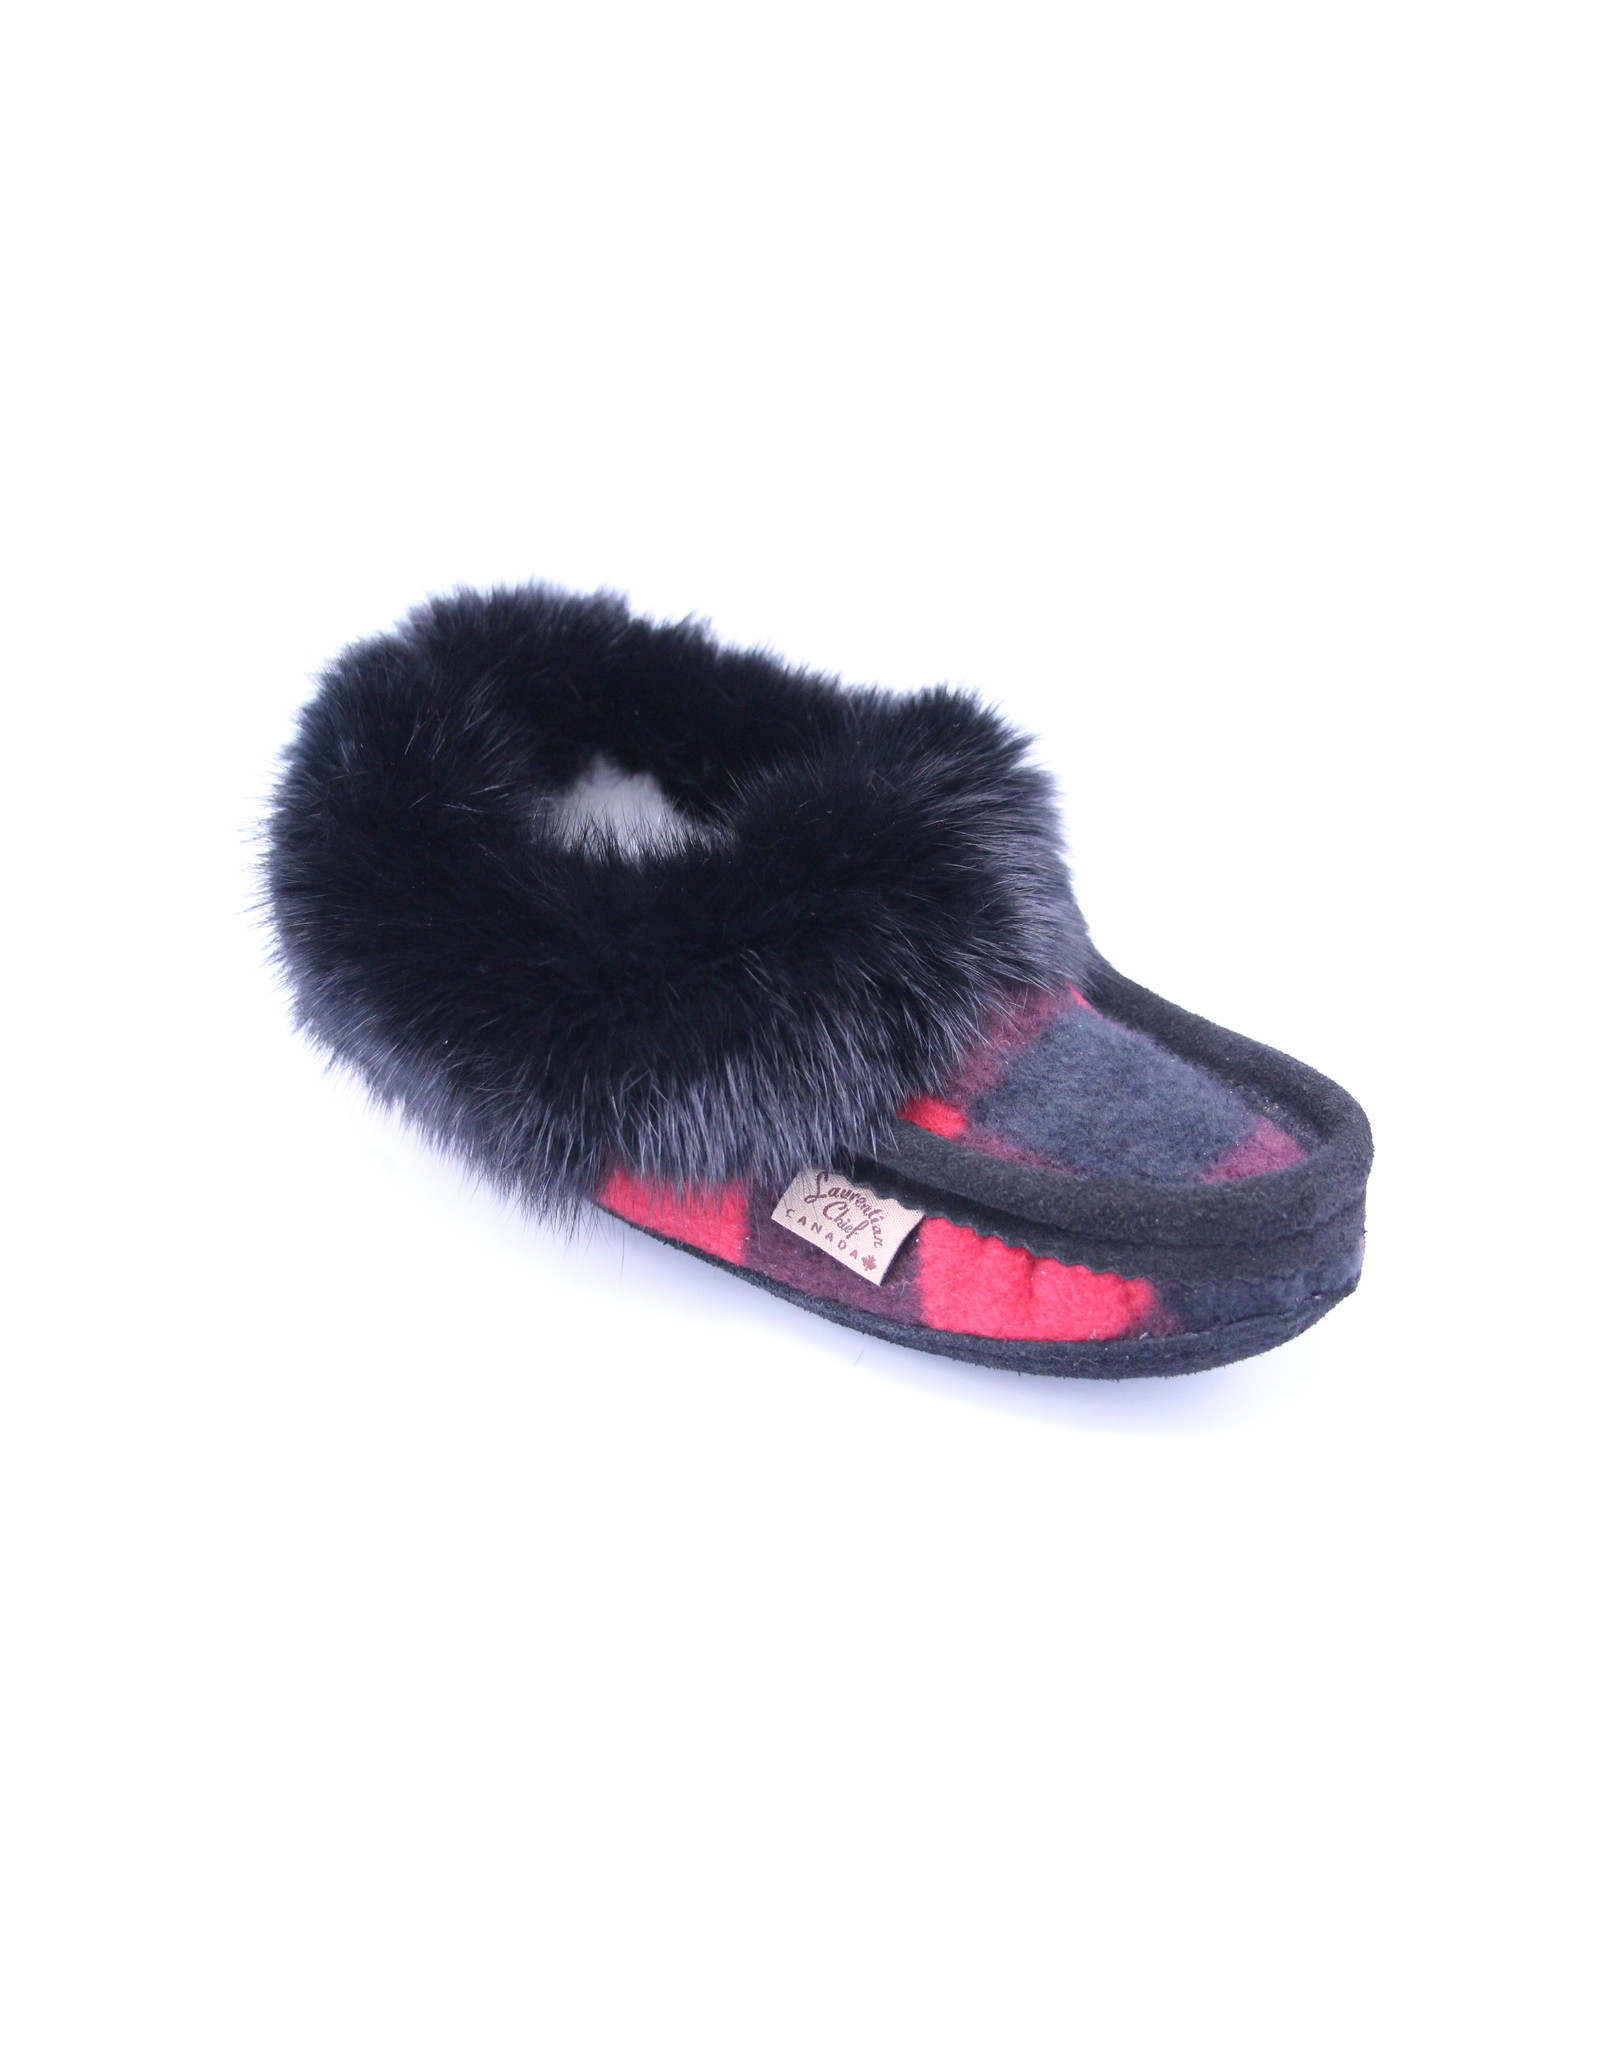 Ladies Black & Red Flannel Slipper with Fur - 606BLL